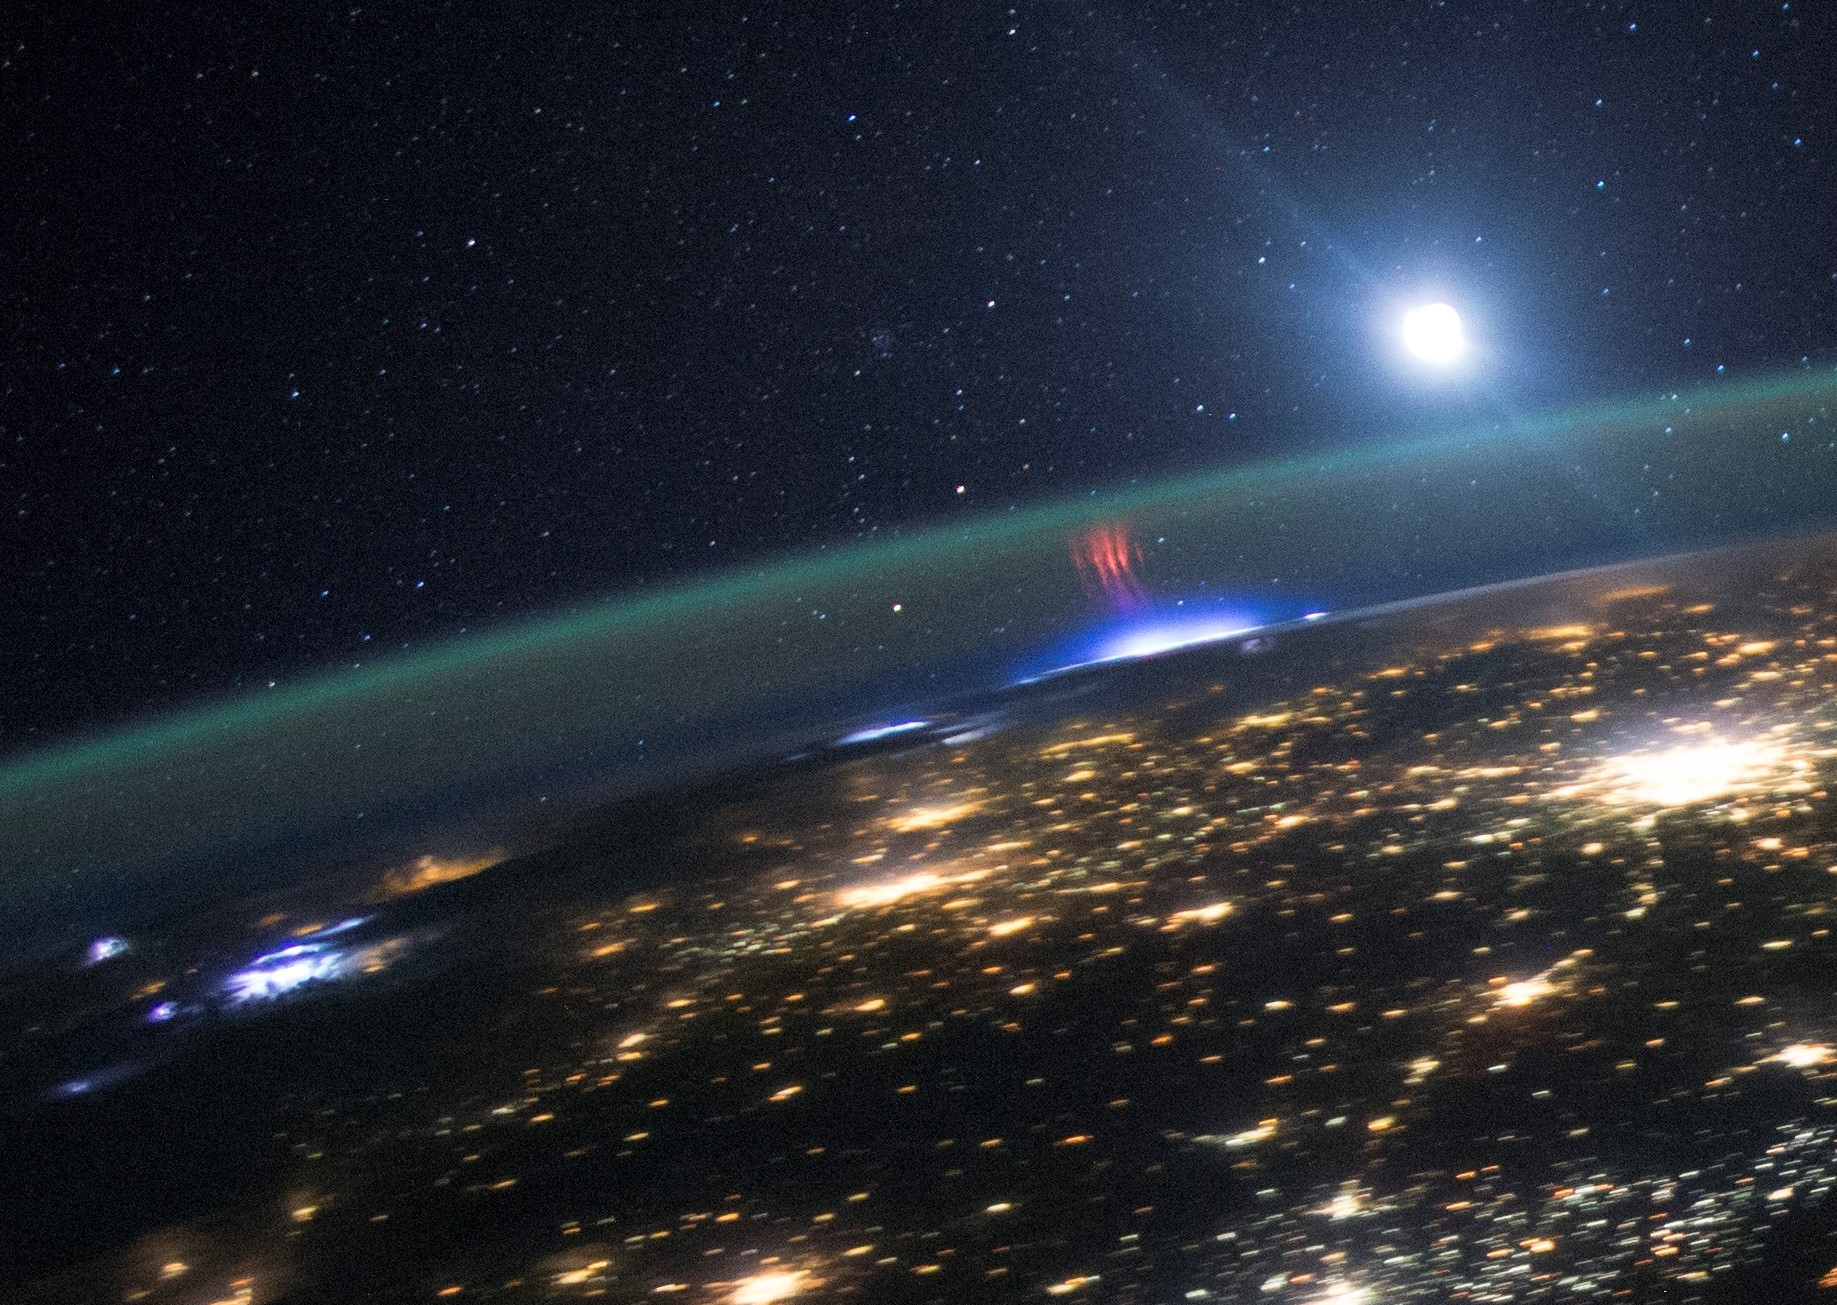 Lighting seen from the International Space Station